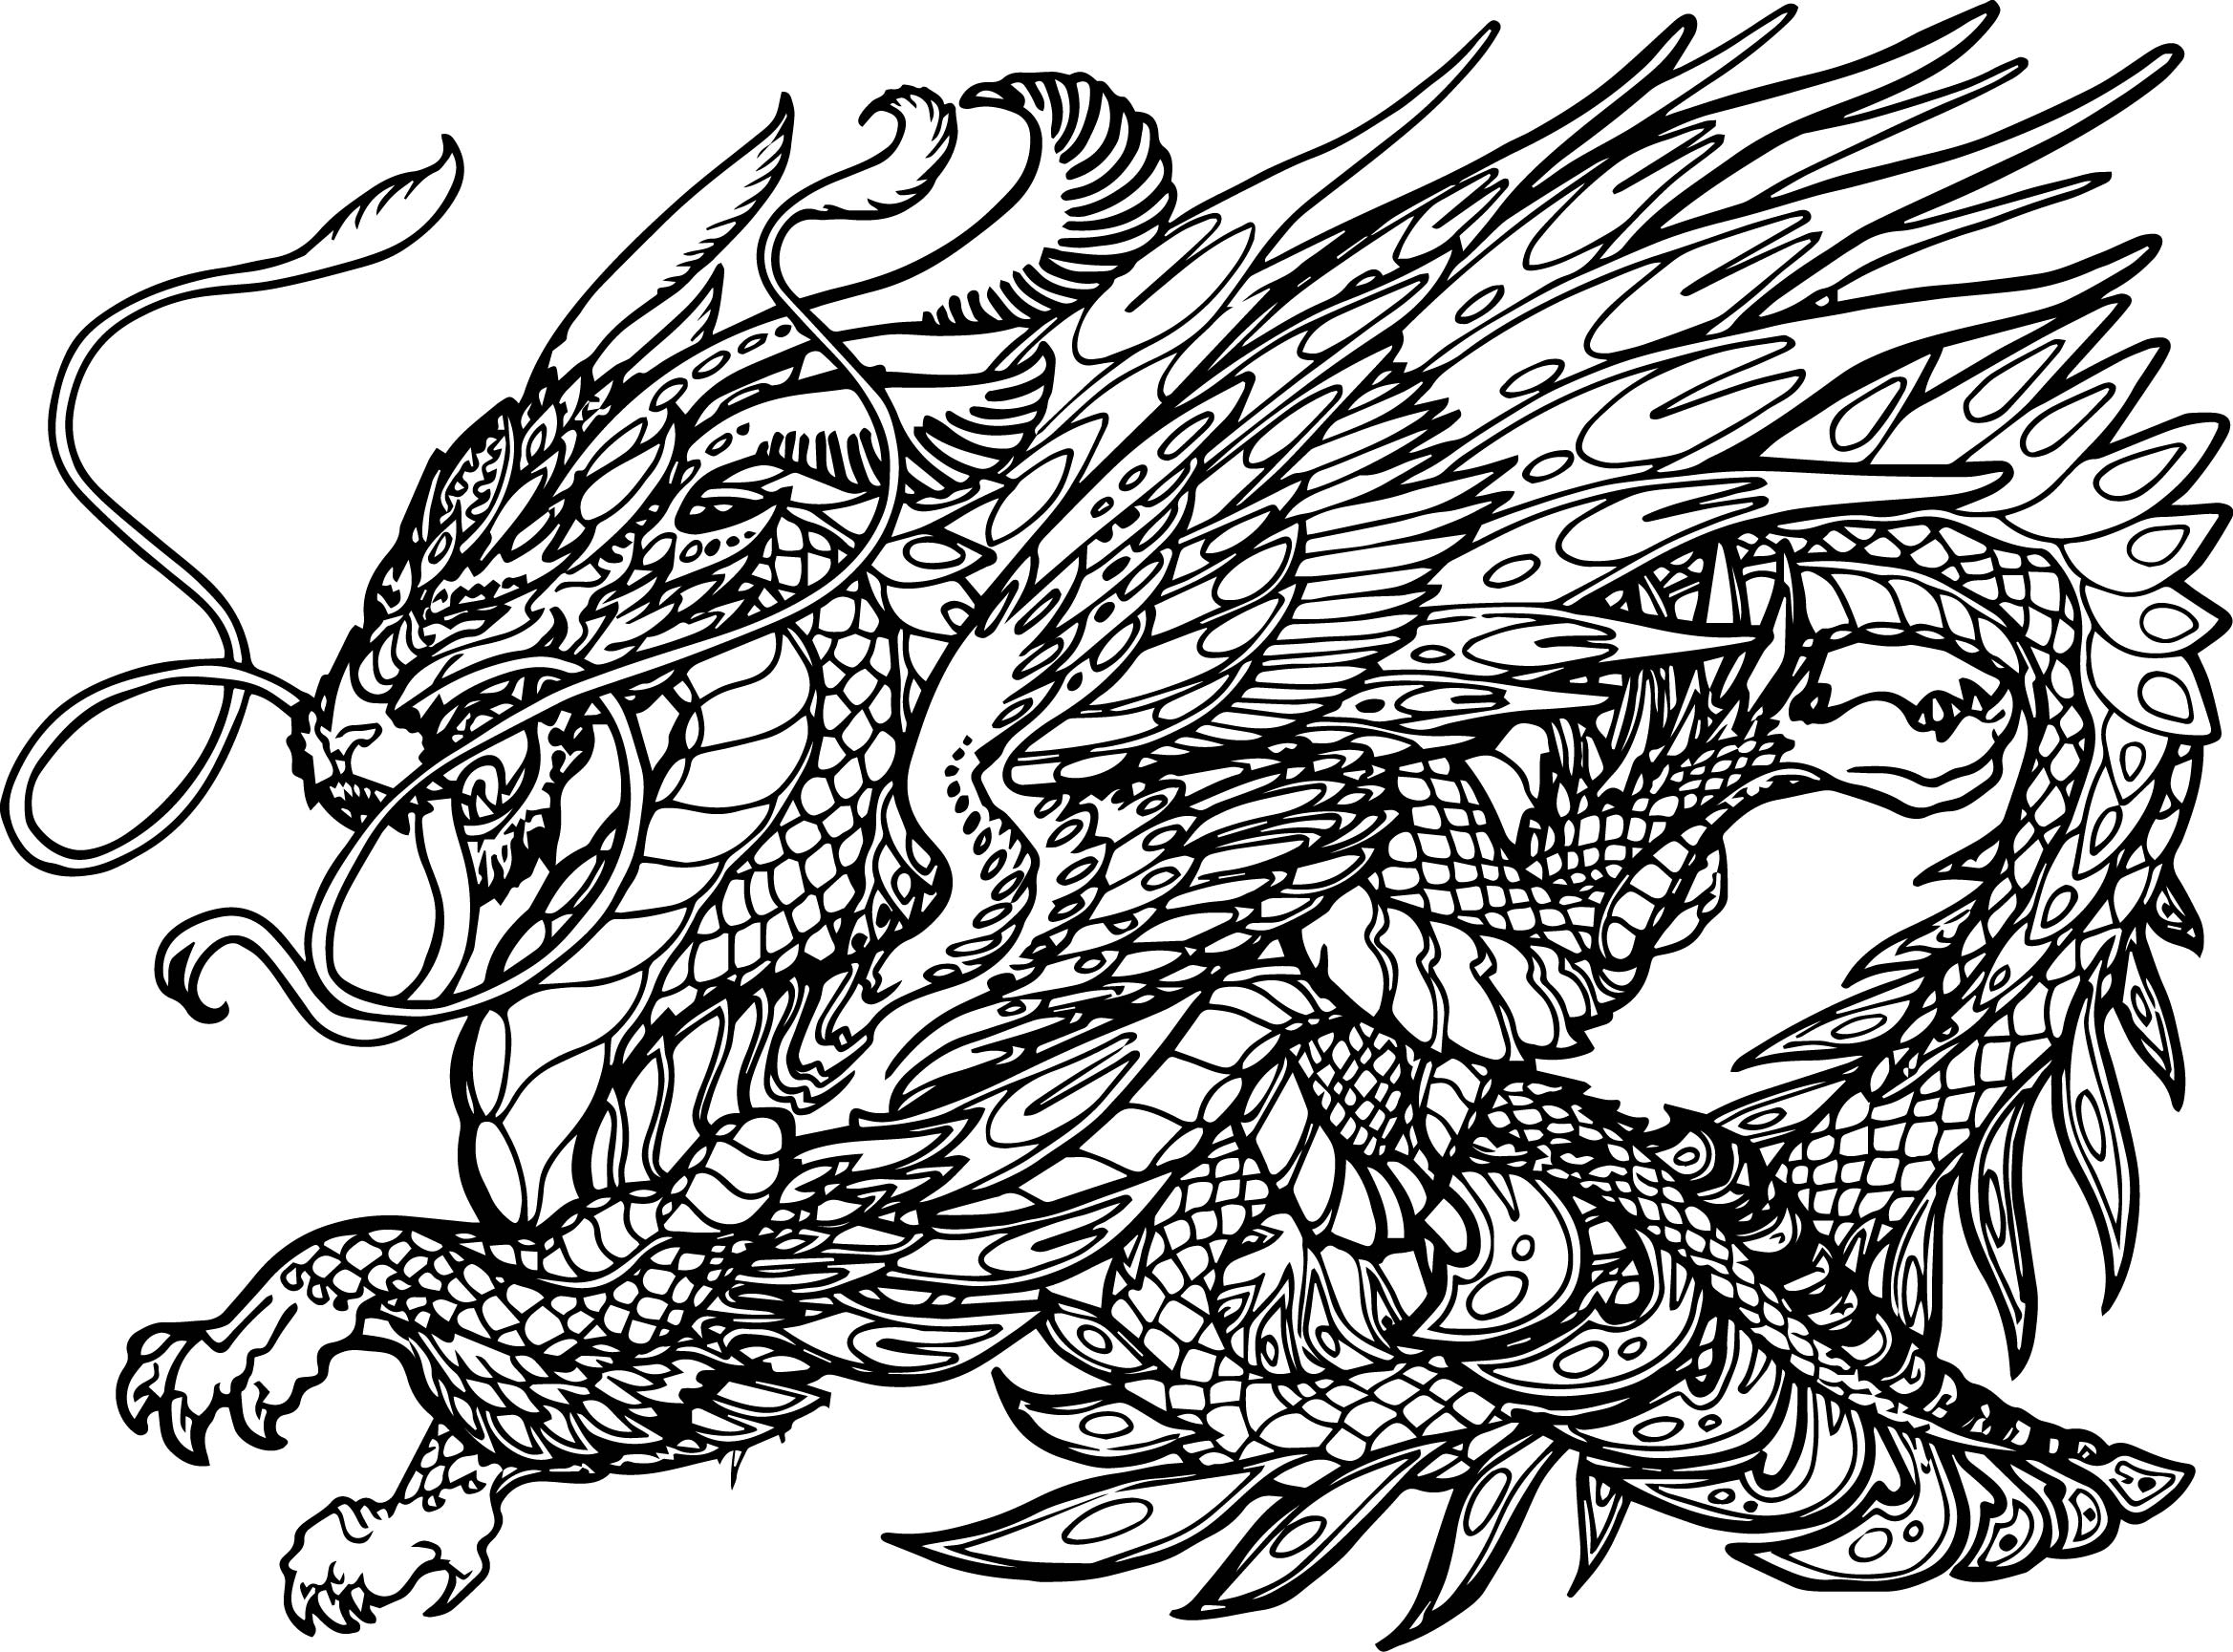 Hydra Coloring Download Hydra Coloring For Free 2019